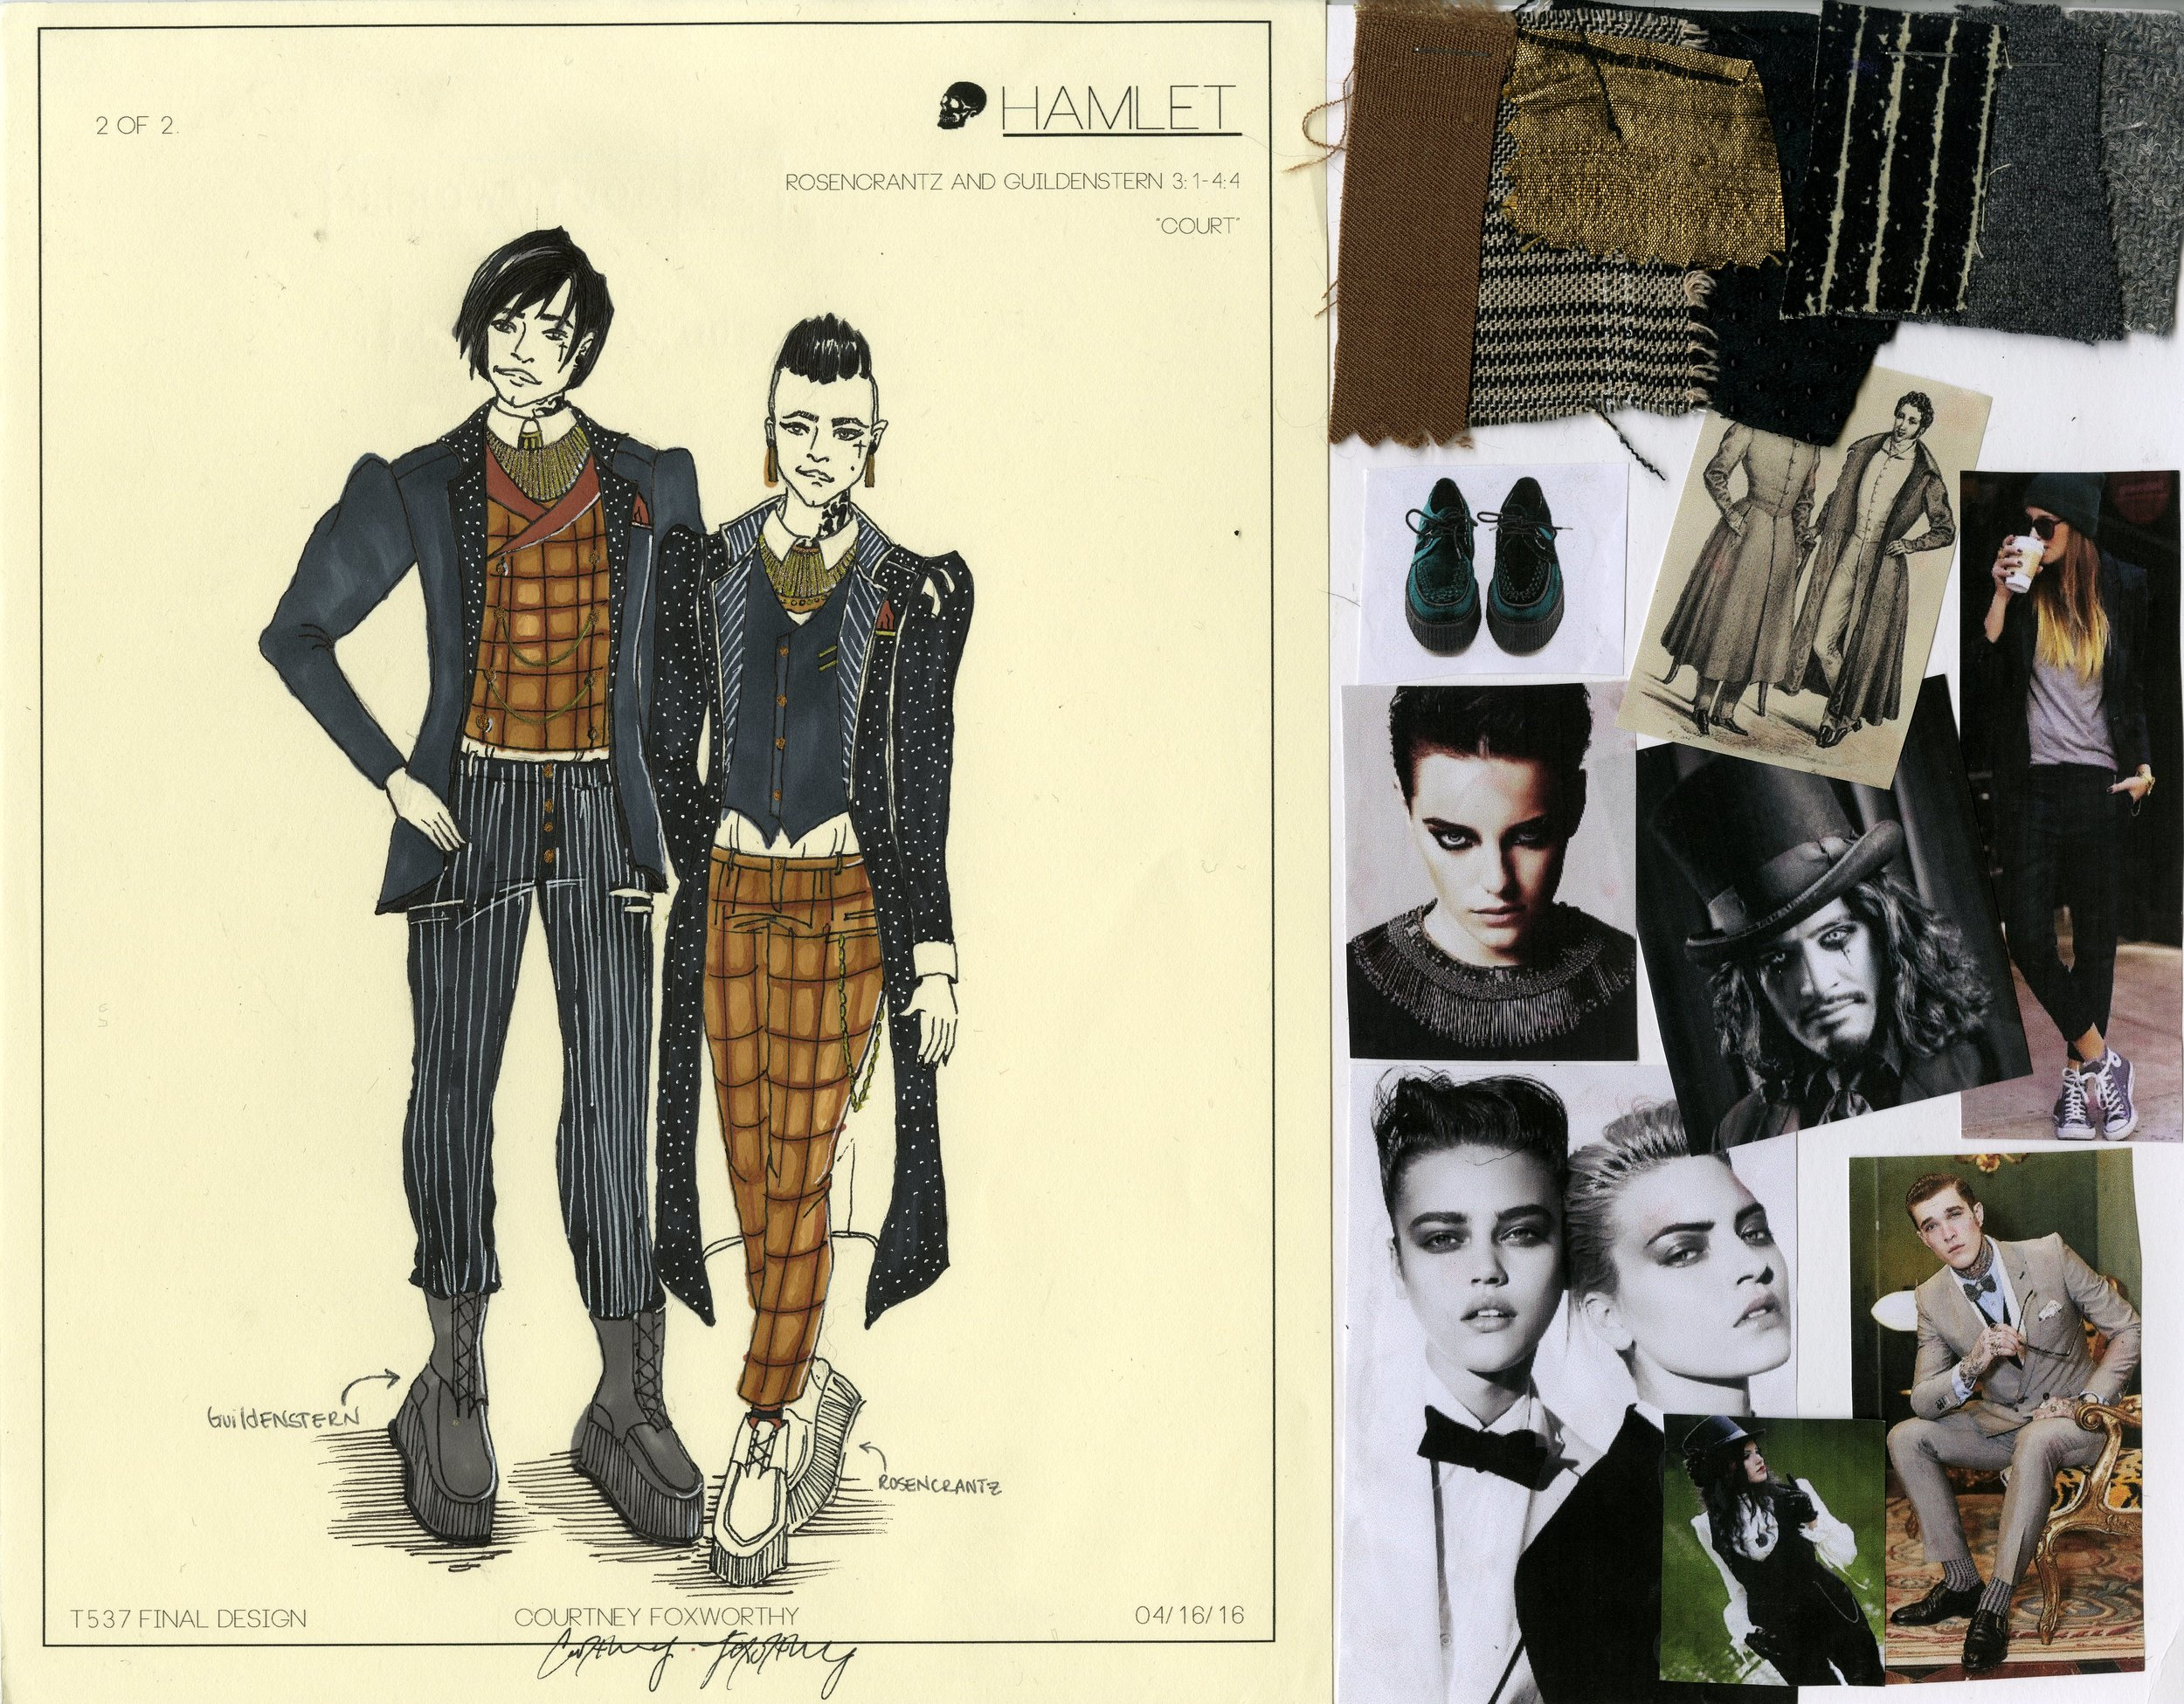 Rosencrantz and Guildenstern look 2 (court clothes)